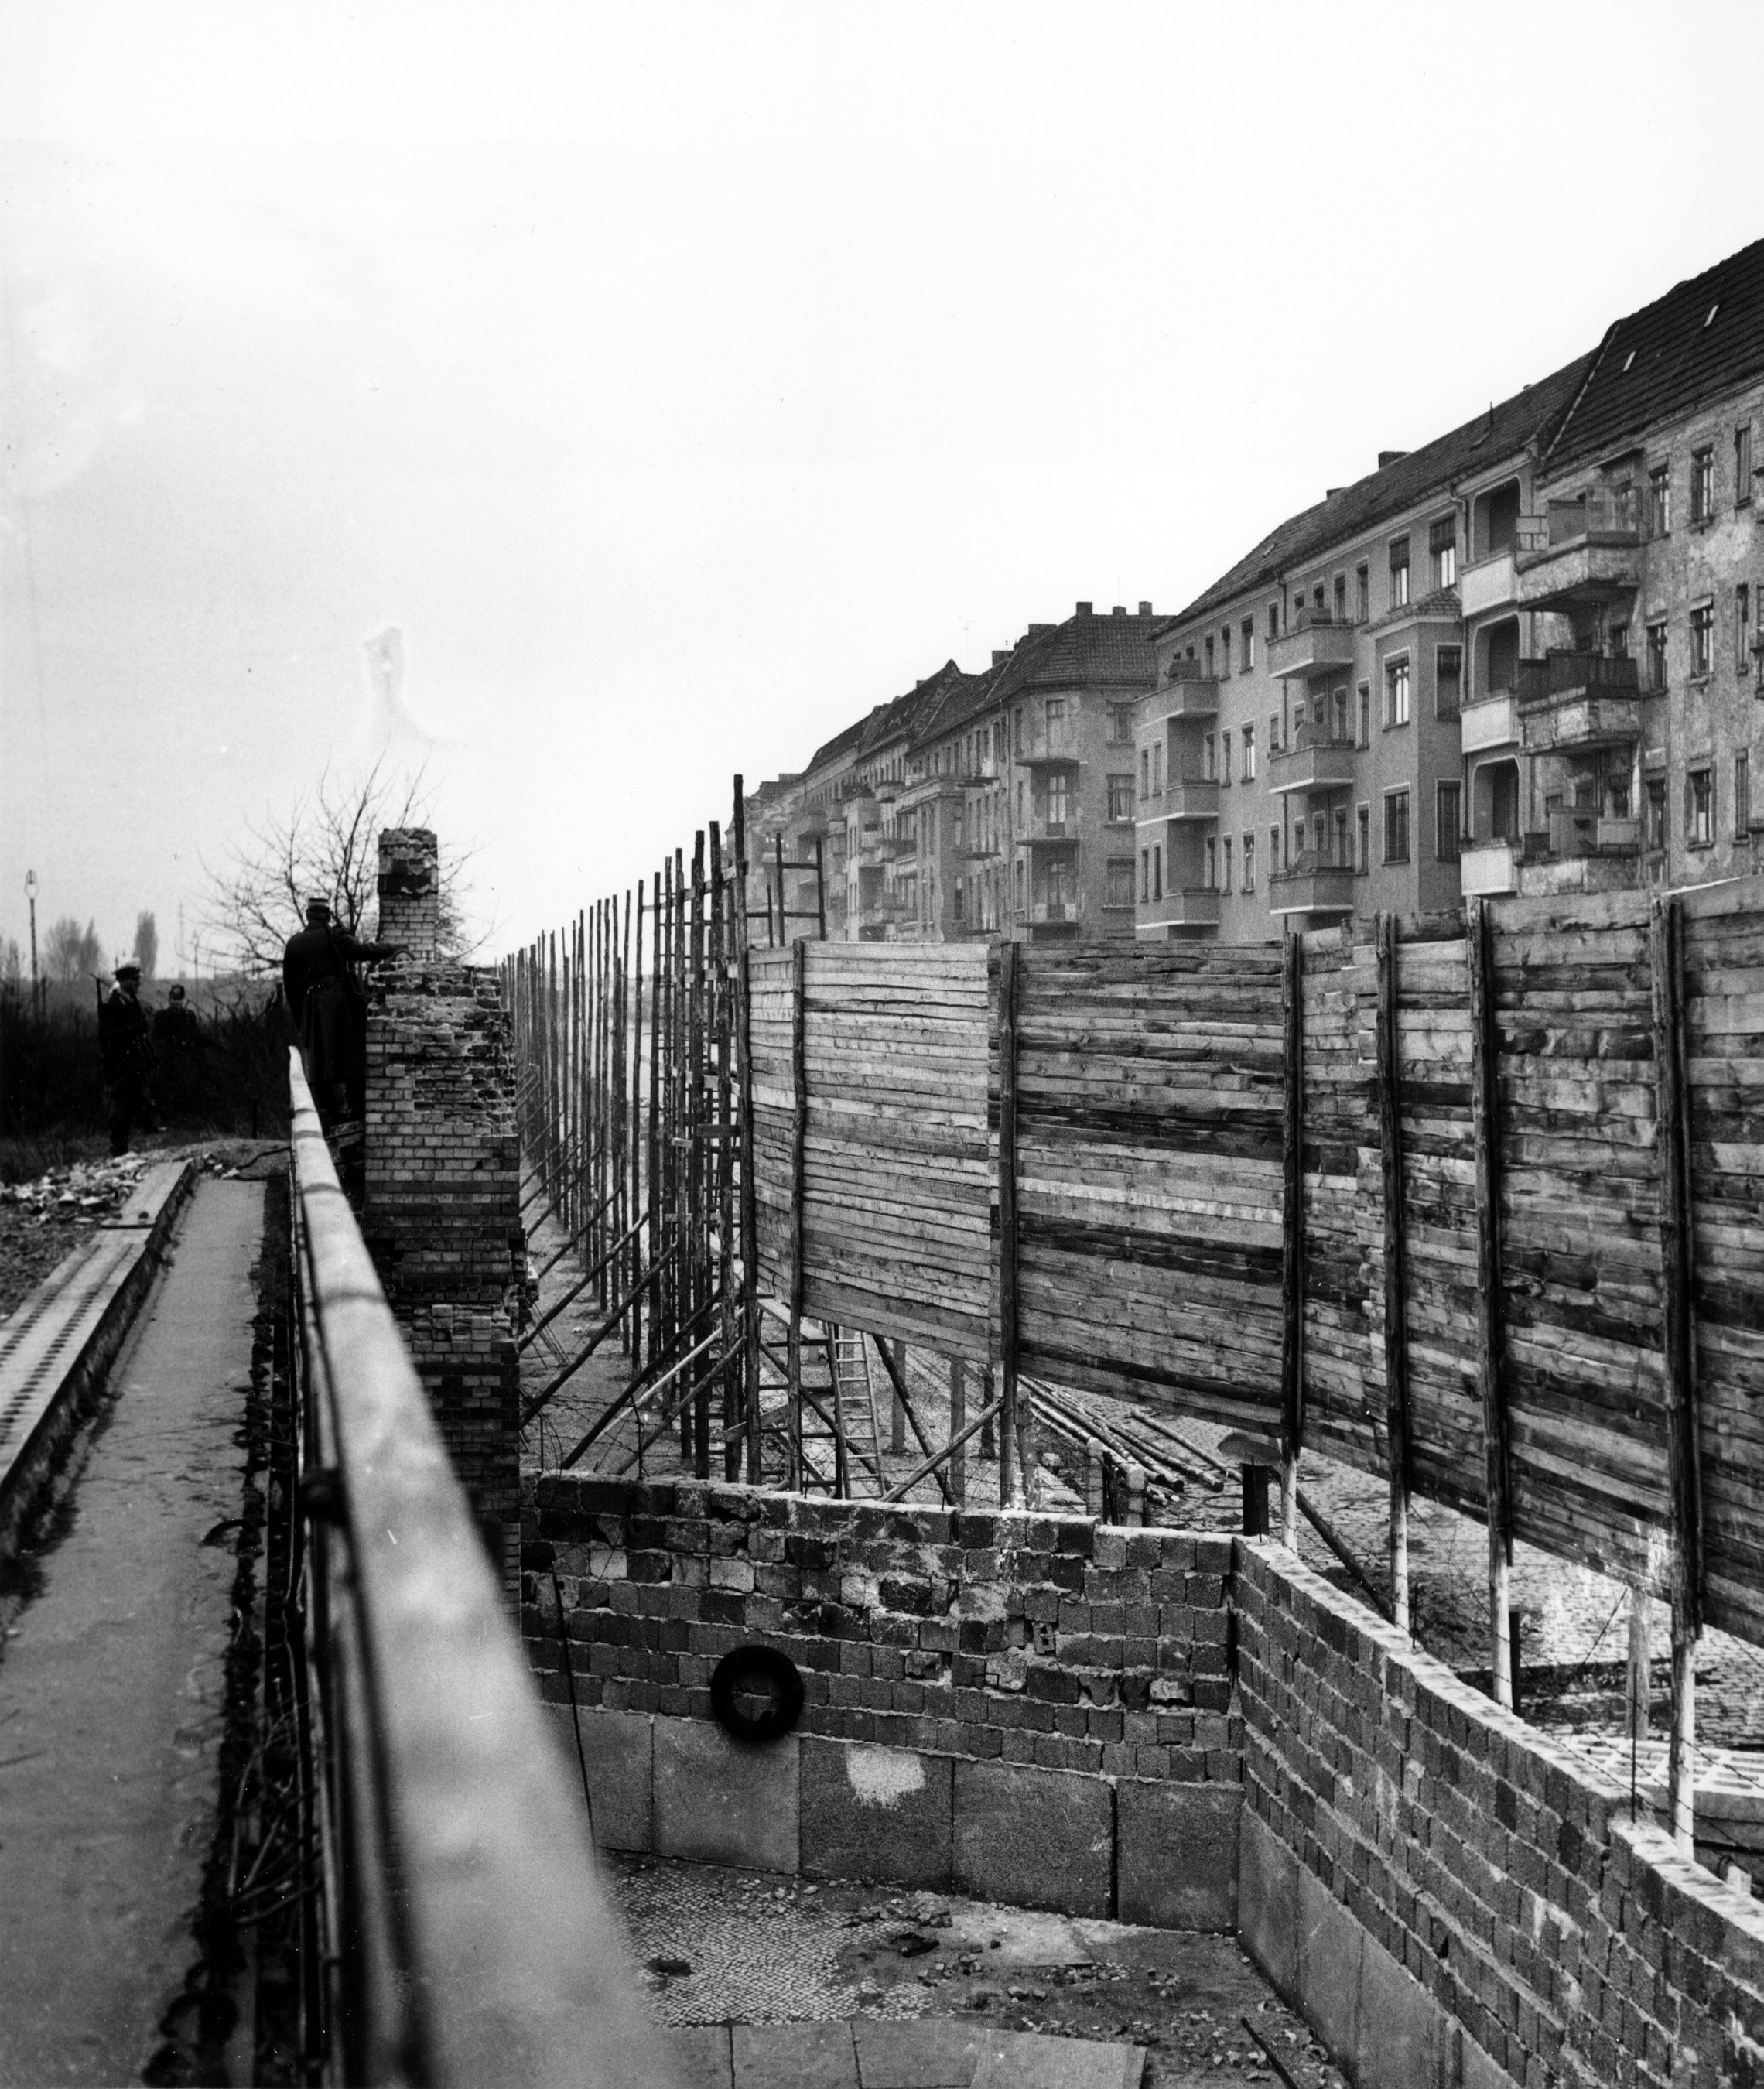 Declassified cables from Berlin Wall tell tale of drama, dare,